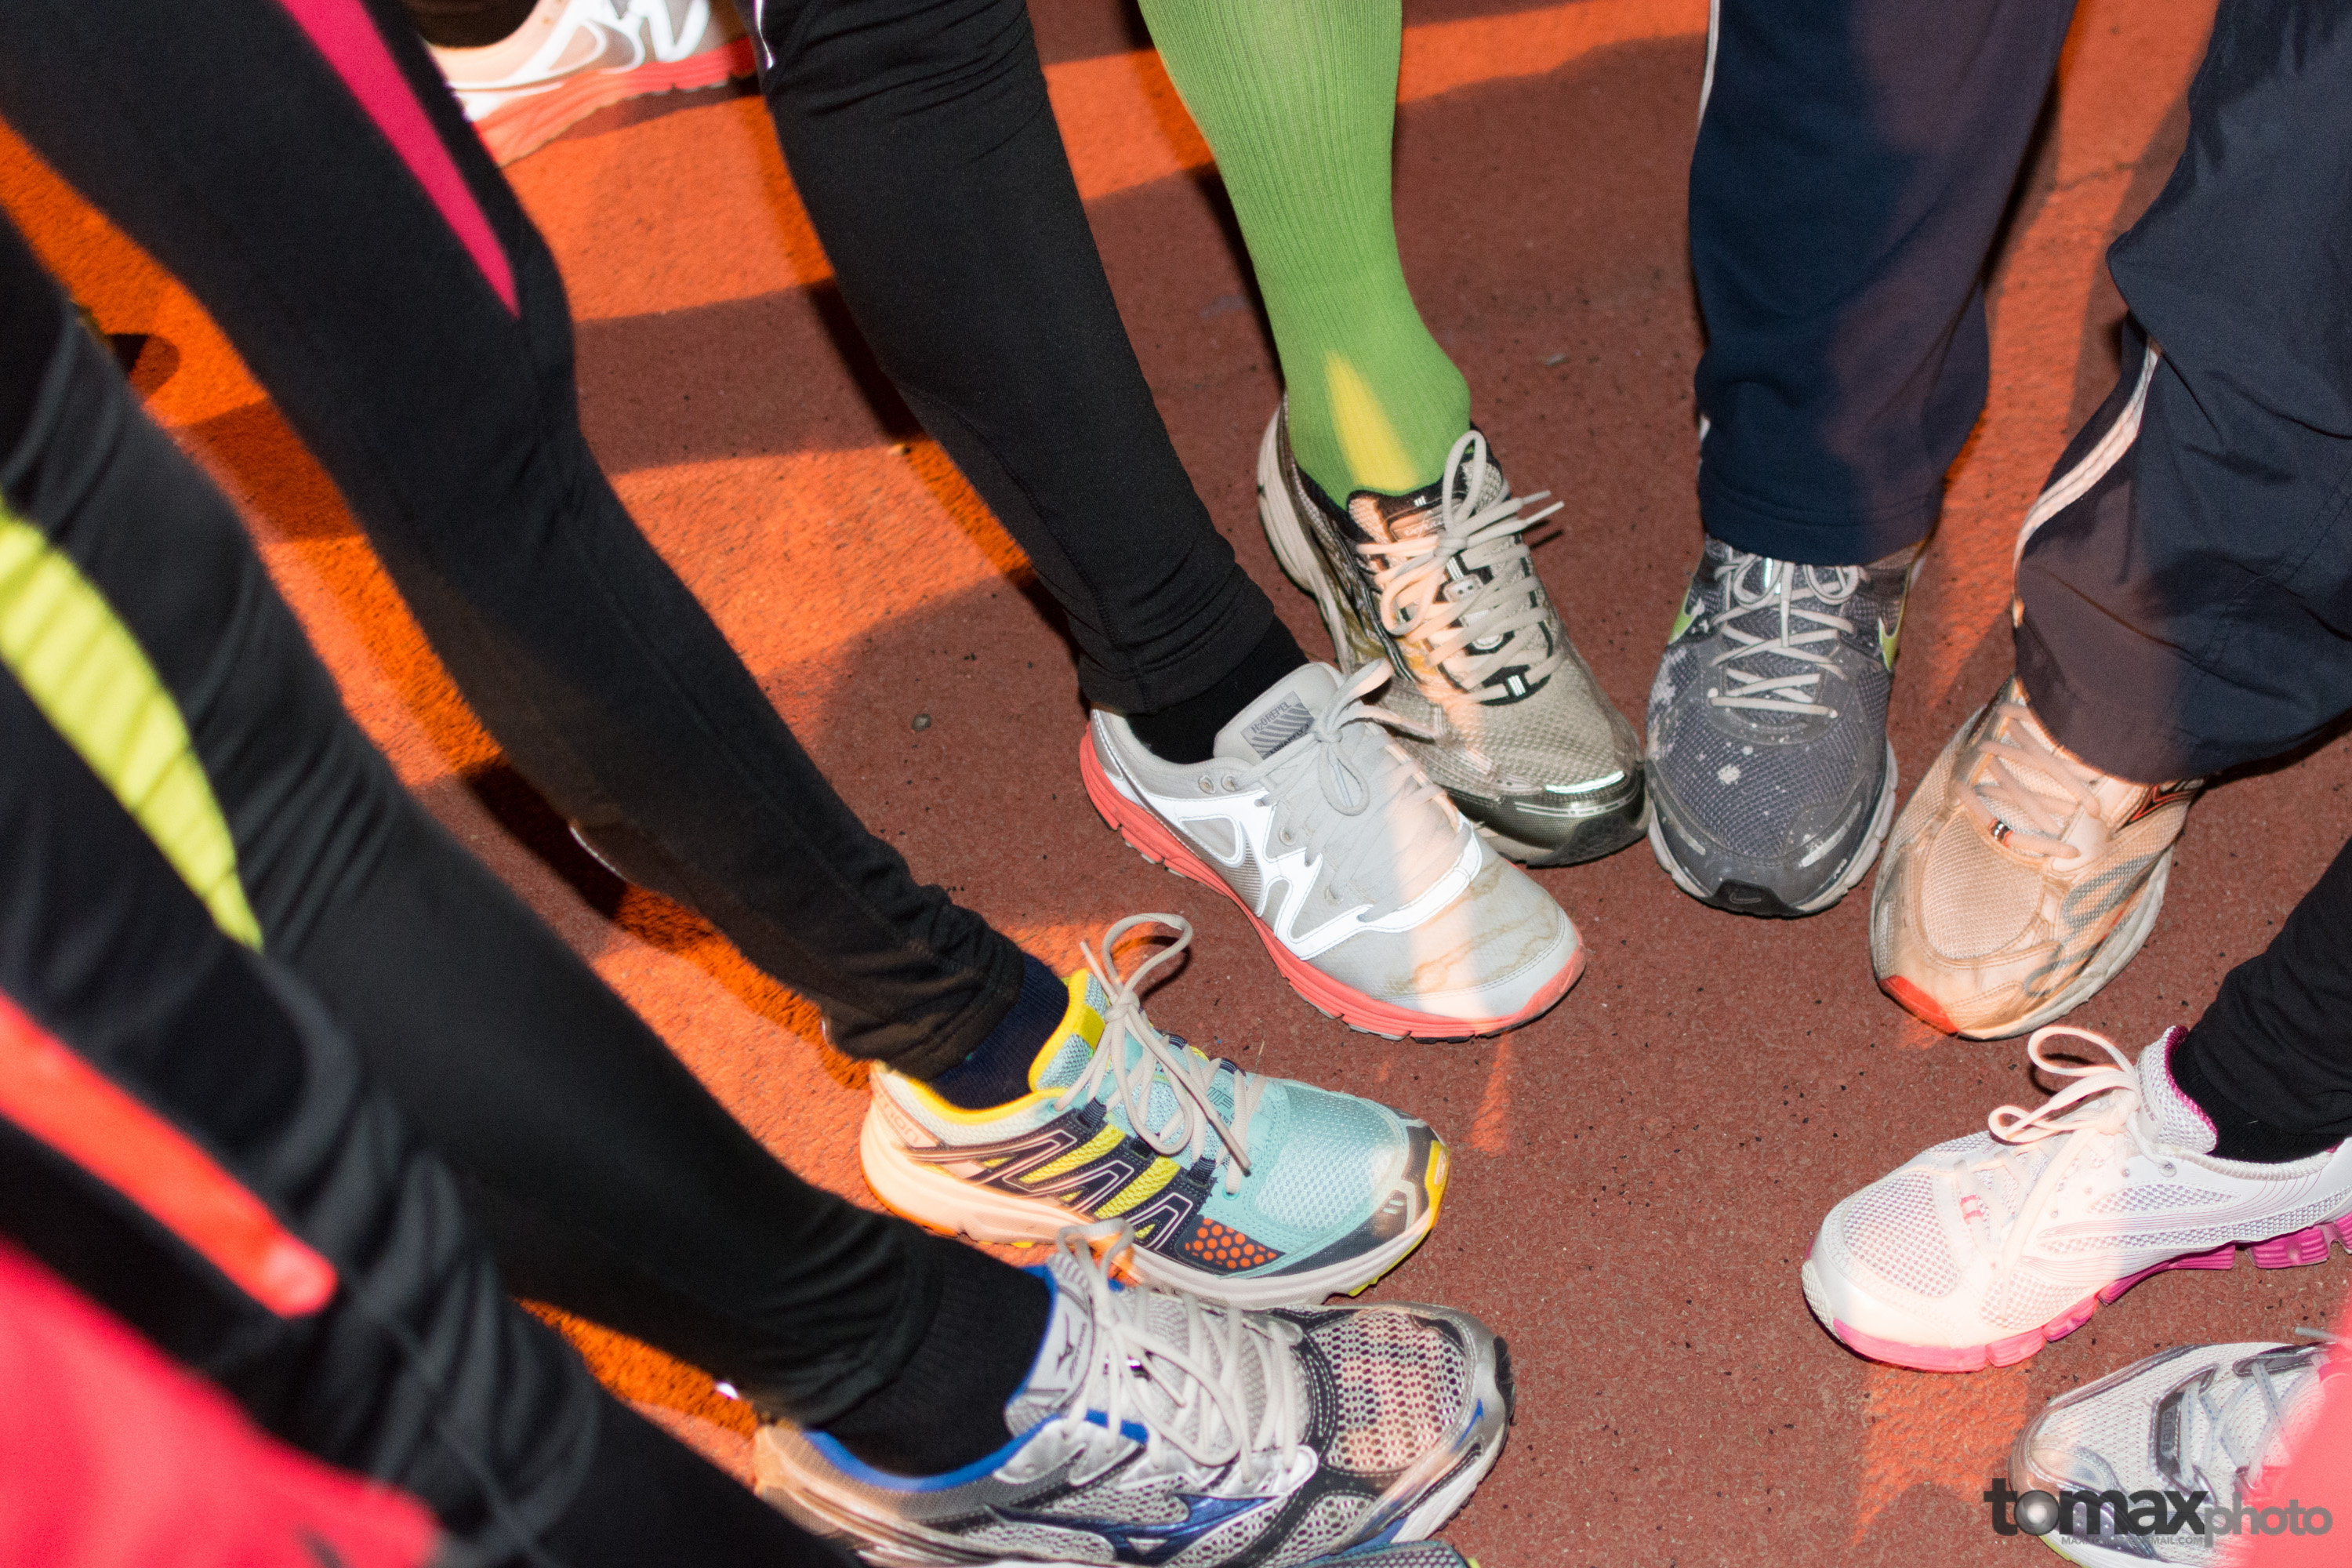 Colourful employees' sneakers on the training